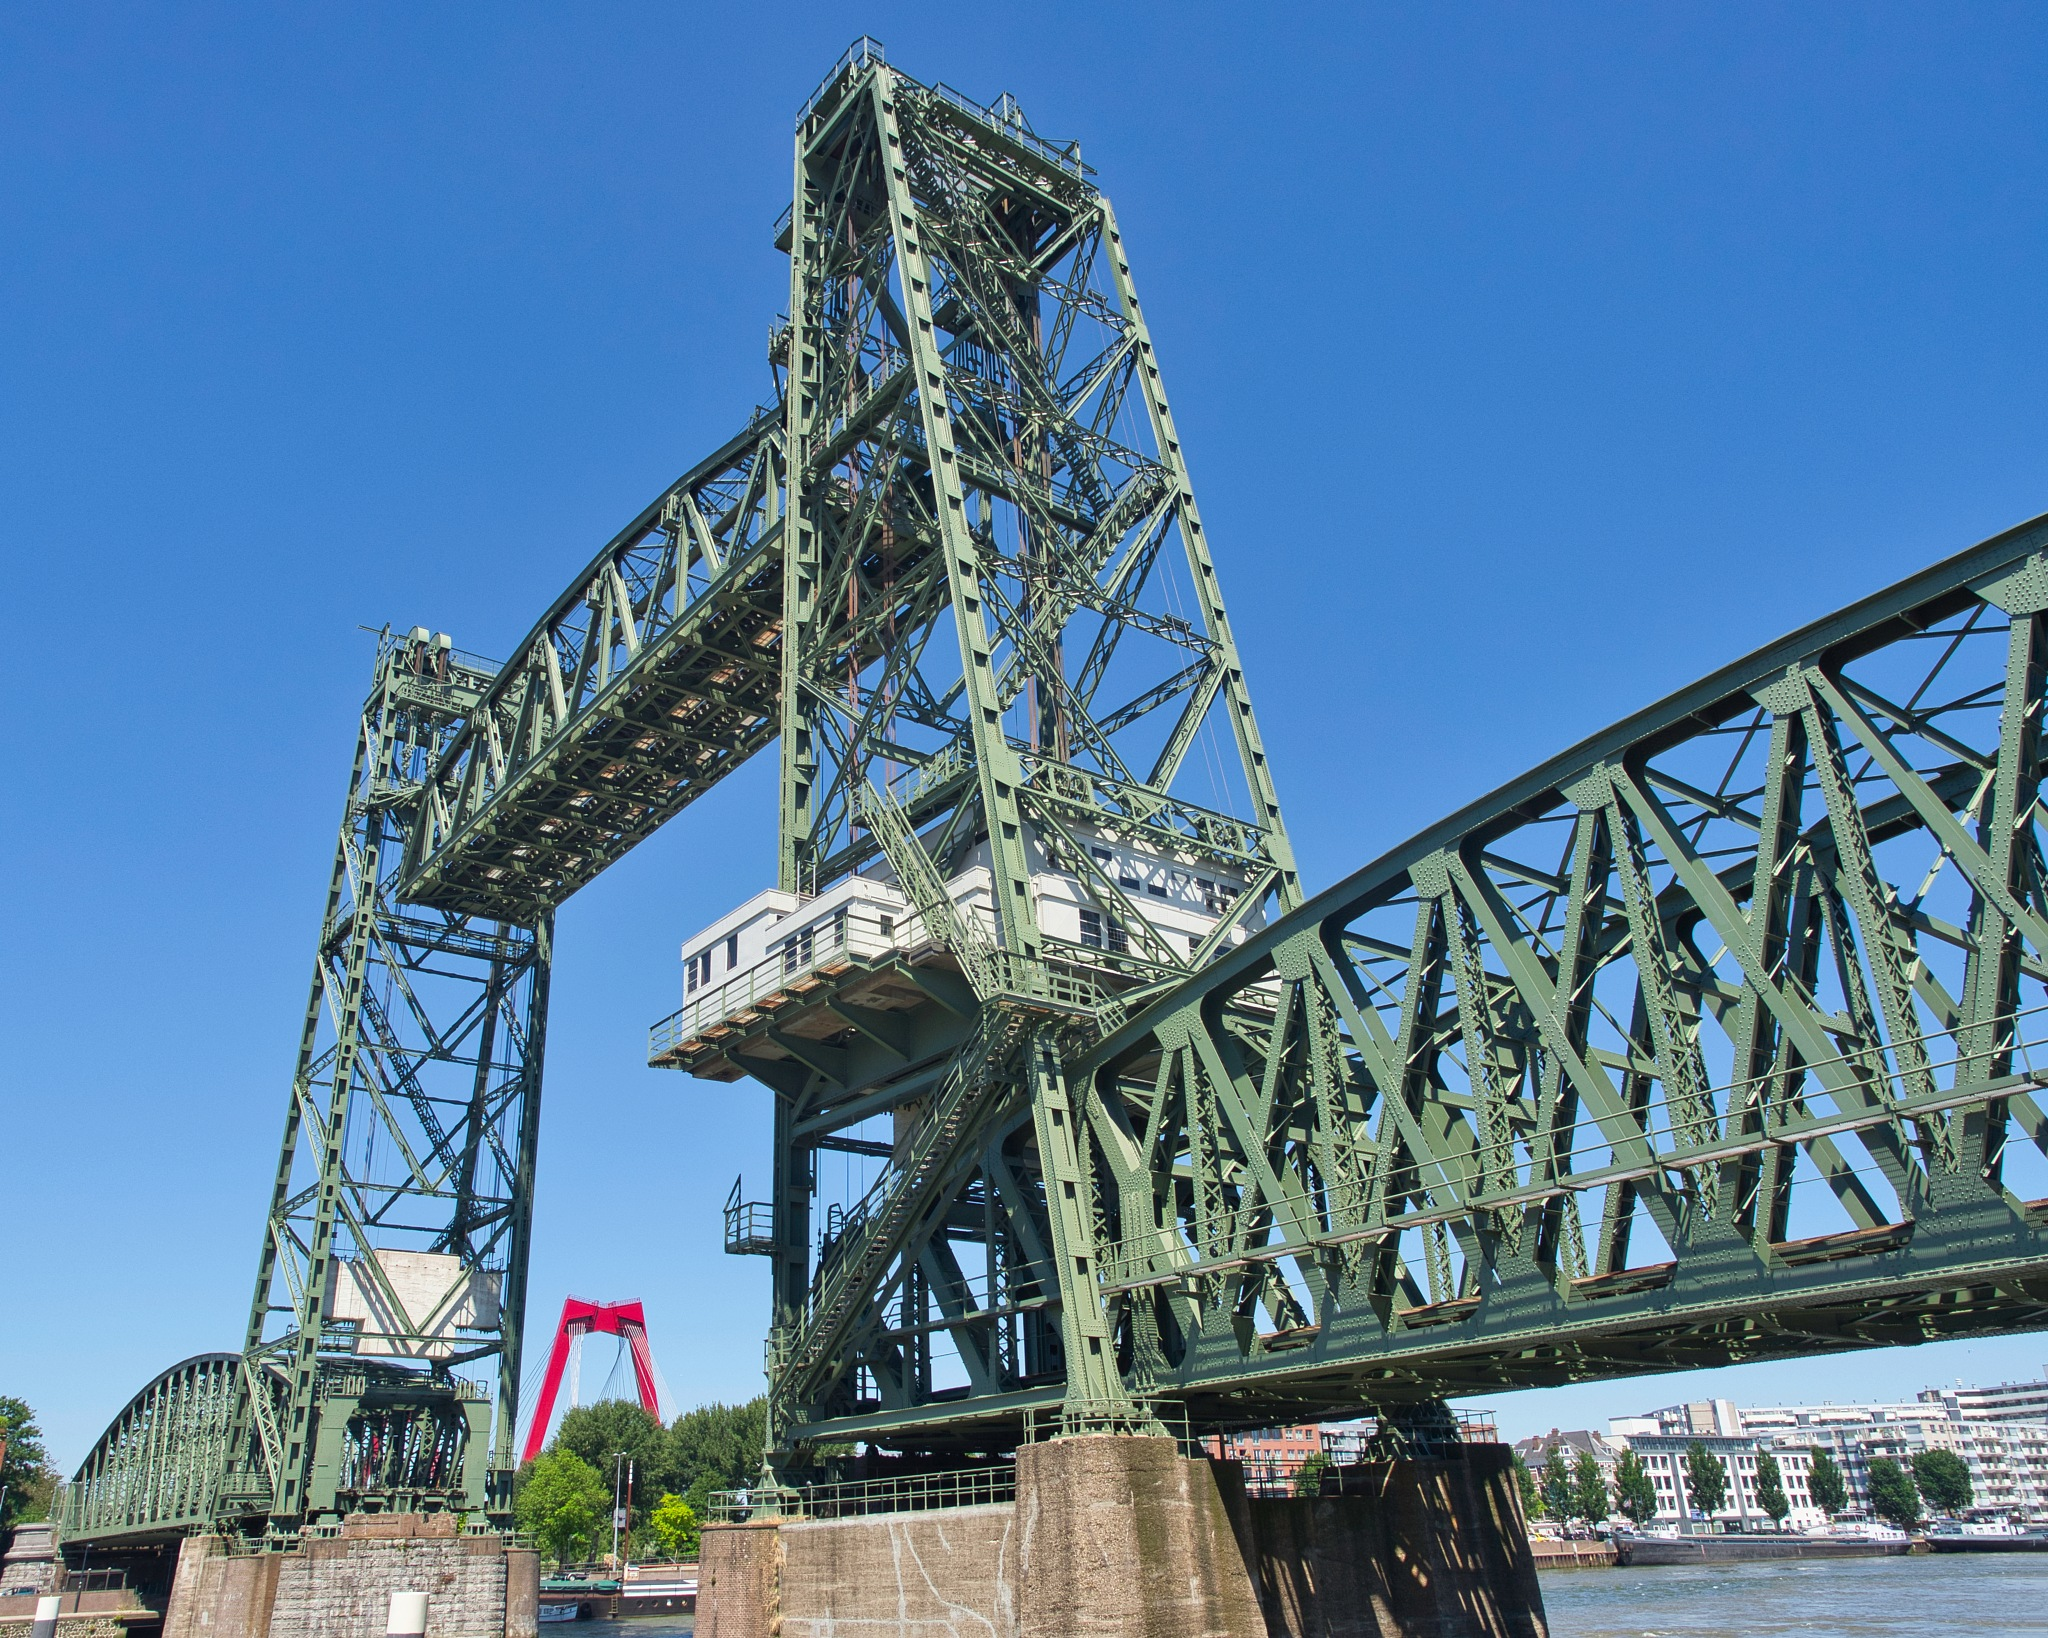 The Hef, from swing bridge, liftbridge to National Monument by Jan Snijder